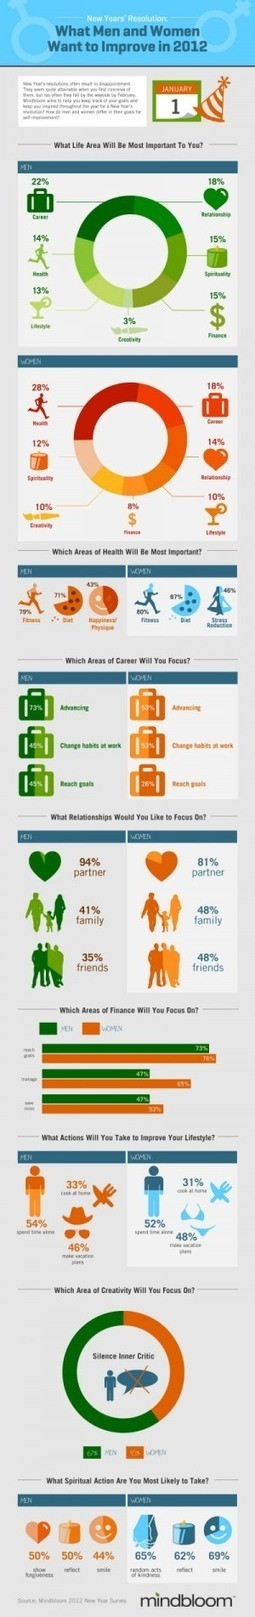 Mindbloom app reveals how men and women want to improve in 2012(exclusive)   Social Gaming & The Gamification of Social Media   Scoop.it